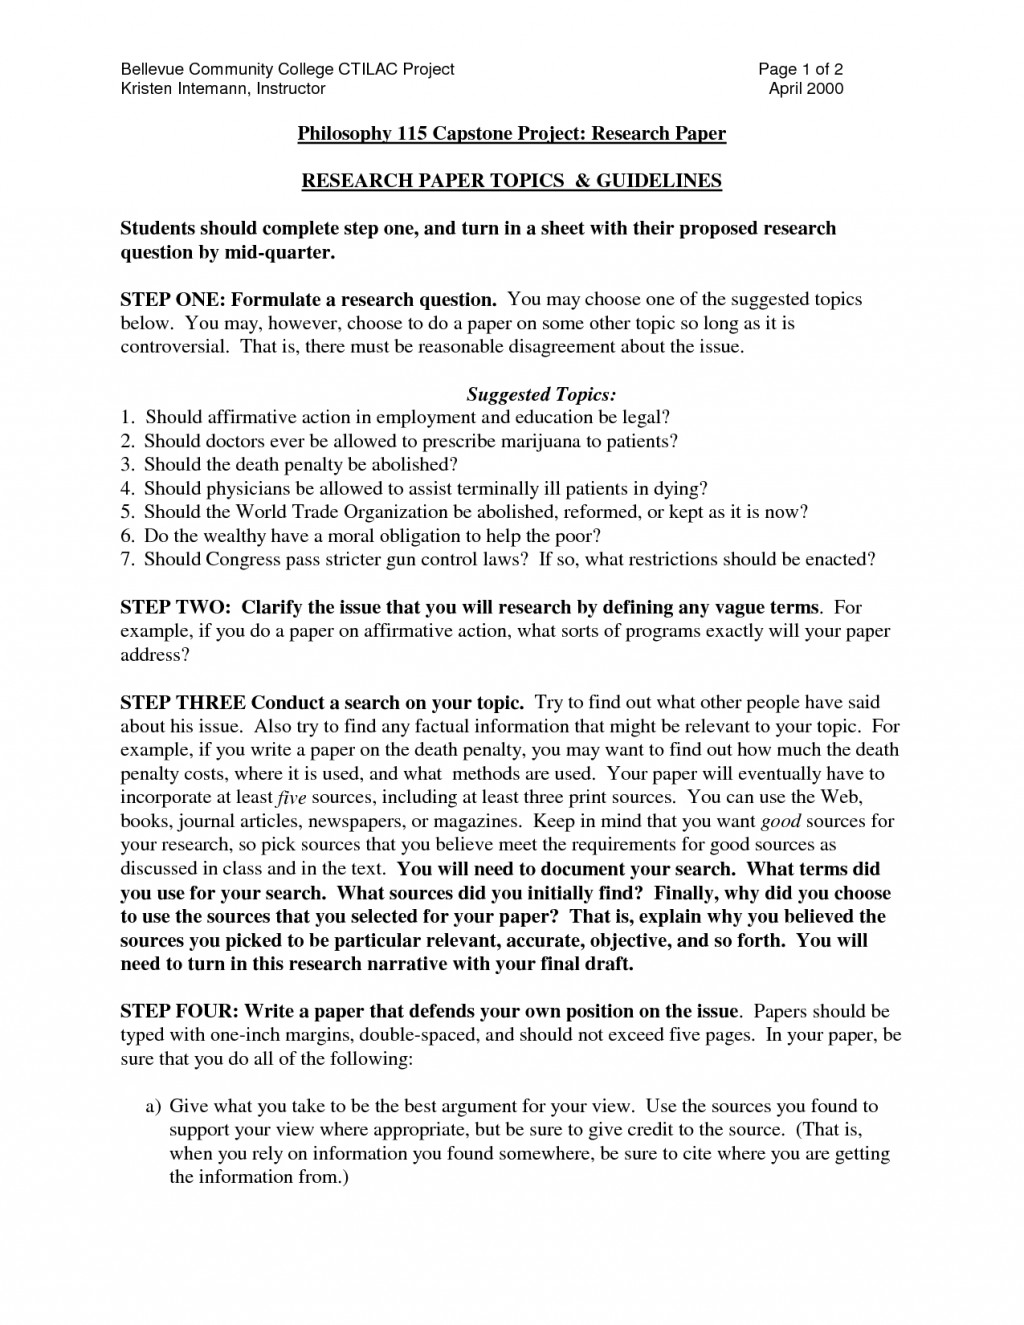 003 Yg32qgw3ao Research Paper For Wondrous College Topics English Class Ideas Sample Students Large